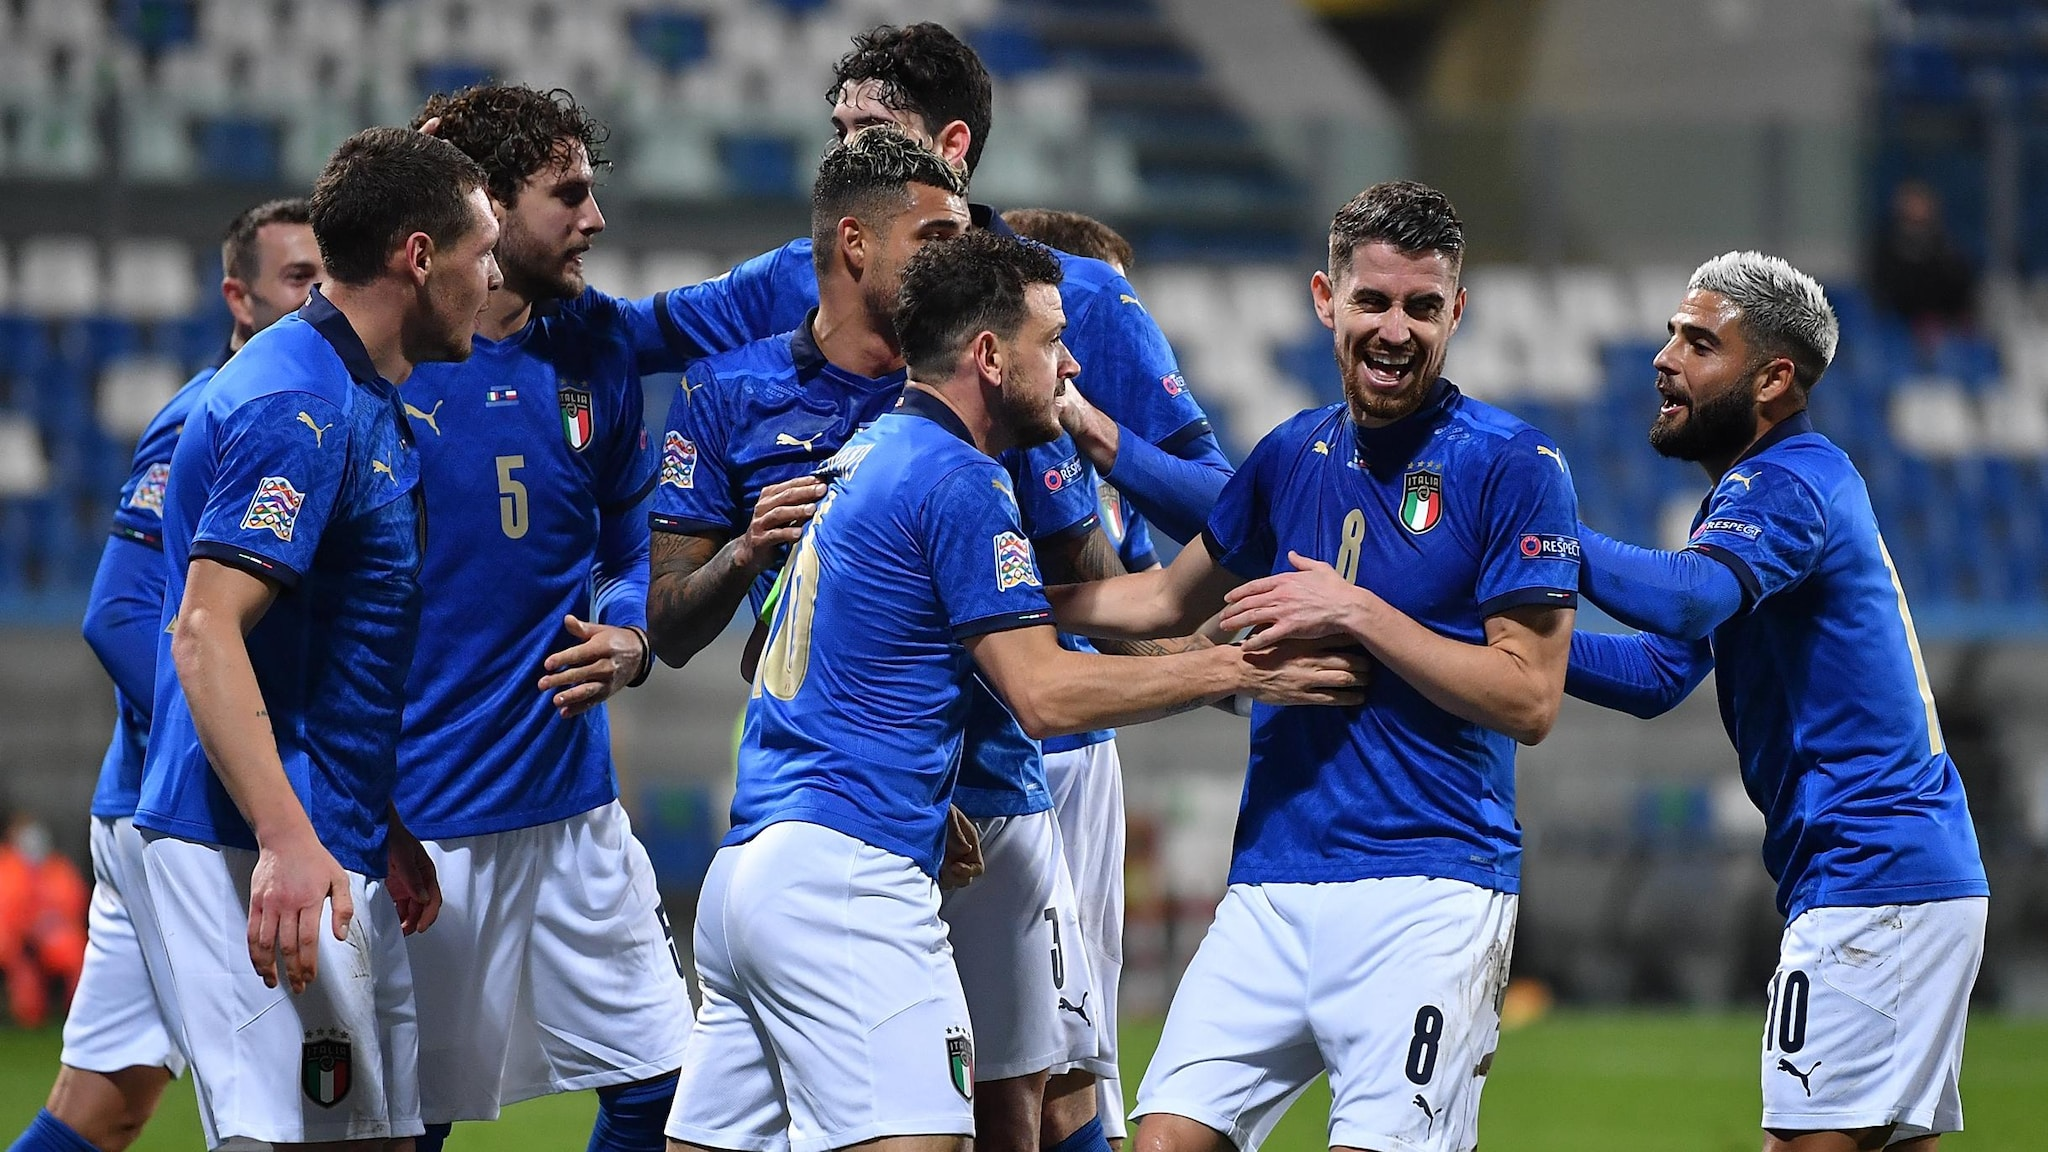 Report: Italy 2-0 Poland